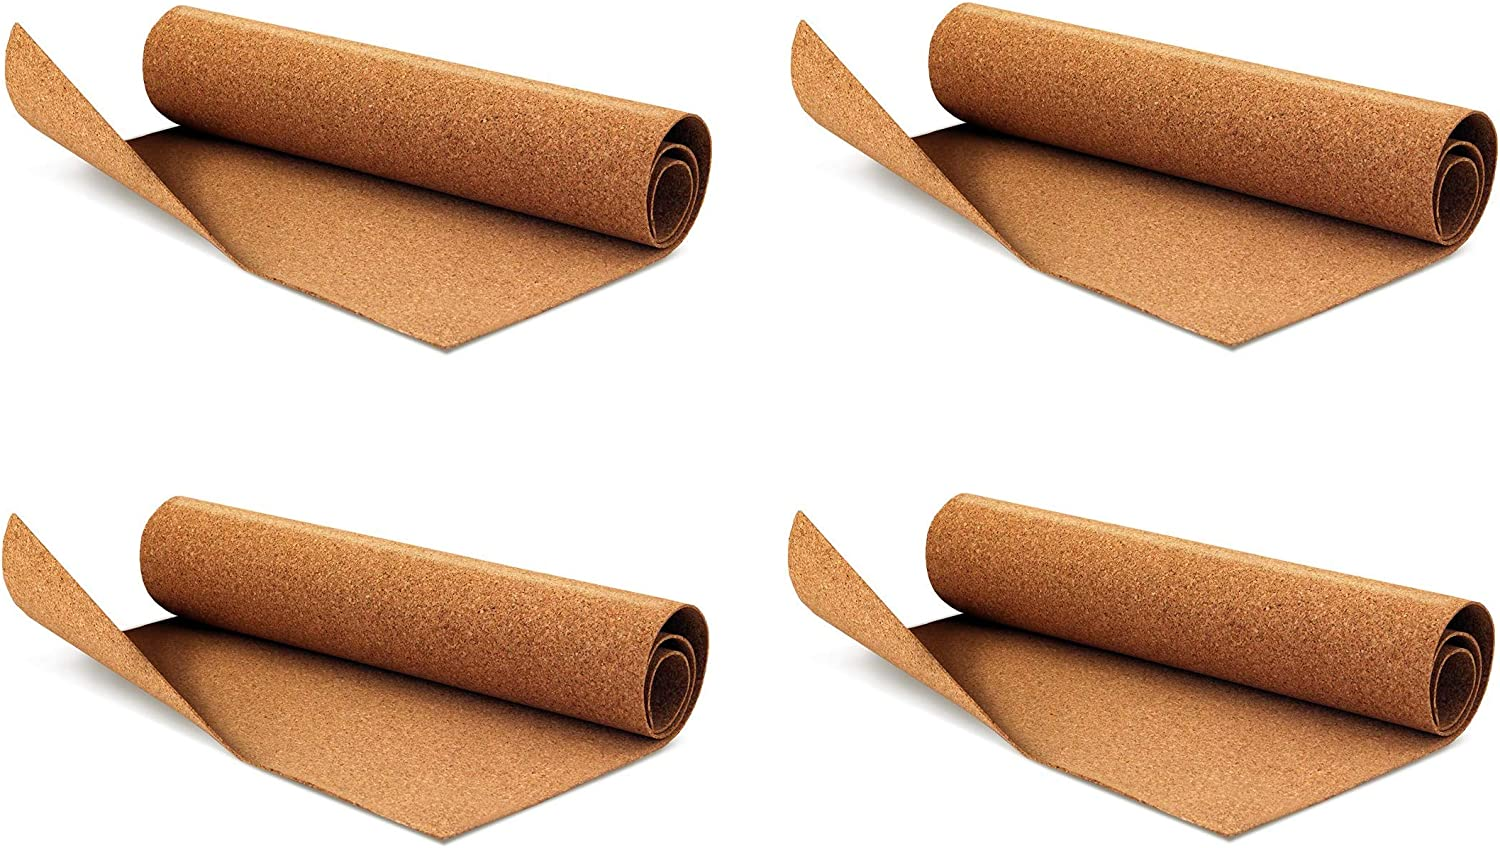 8.5 x 11 ... Hygloss Products Cork Sheets 2 mm Thick Self Adhesive Cork Roll